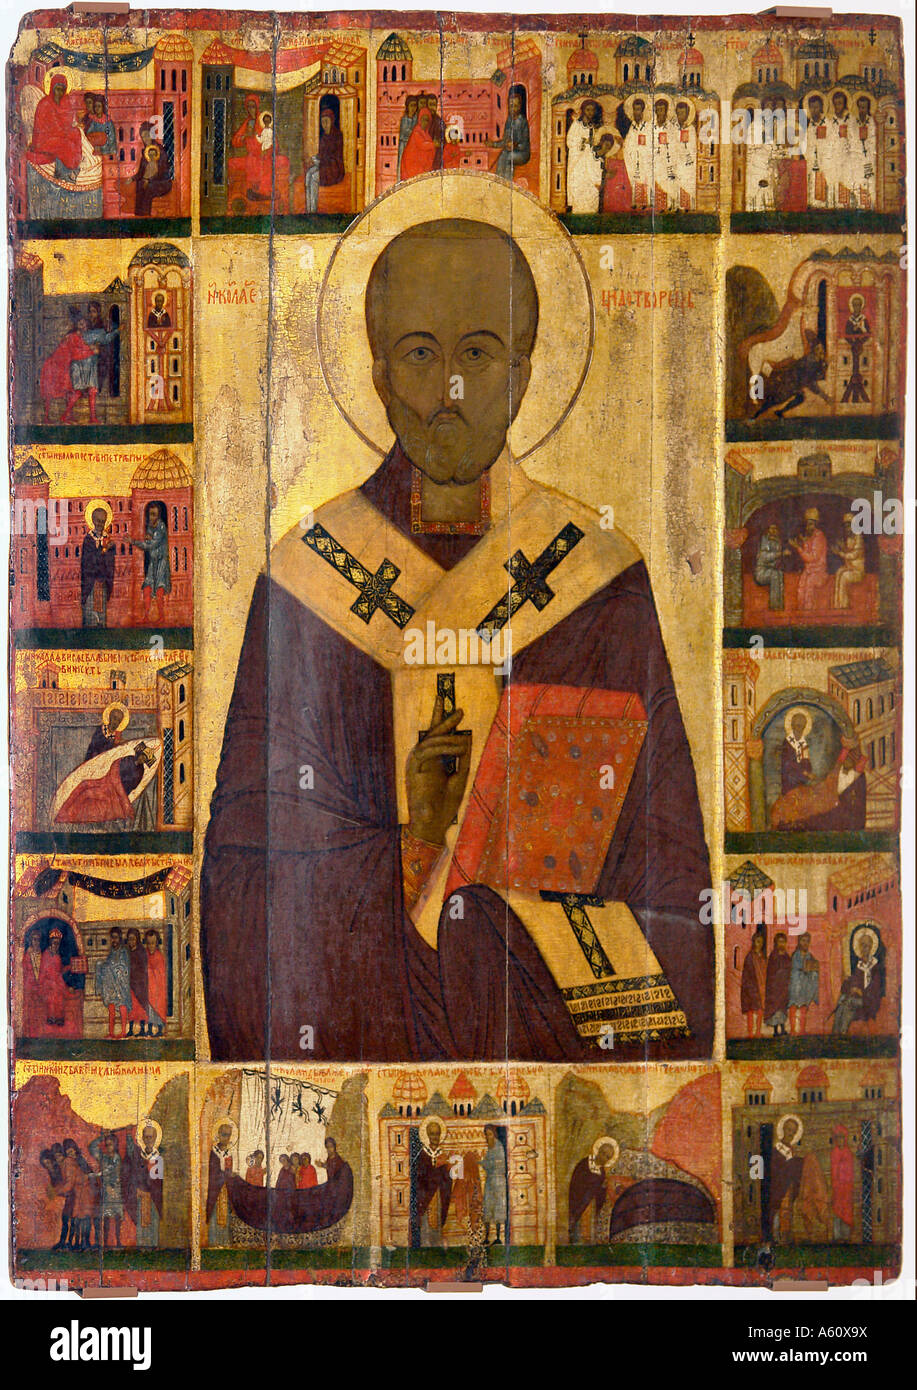 Painet jj1930 russia saint st. nicholas scenes life late c14th early c15th church ss boris gleb plotsiki icon museum - Stock Image